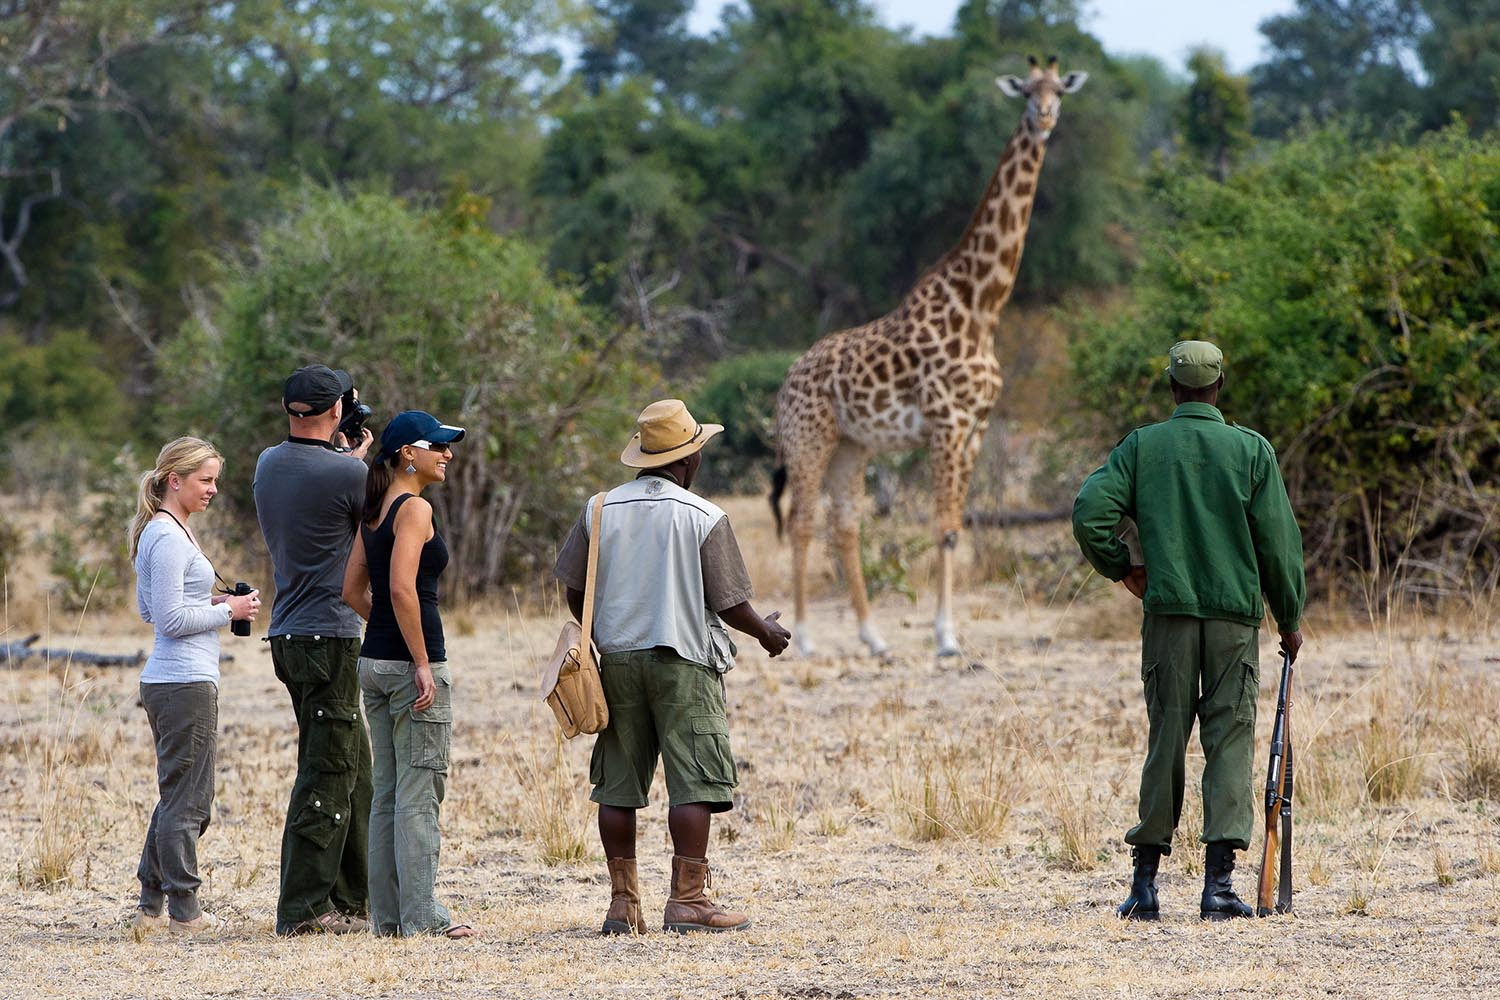 rps-mobile-walking-safari-lodge-zambia-in-style-tours-safari-packages-lodges-south-luangwa-national-park-safari-with-giraffe